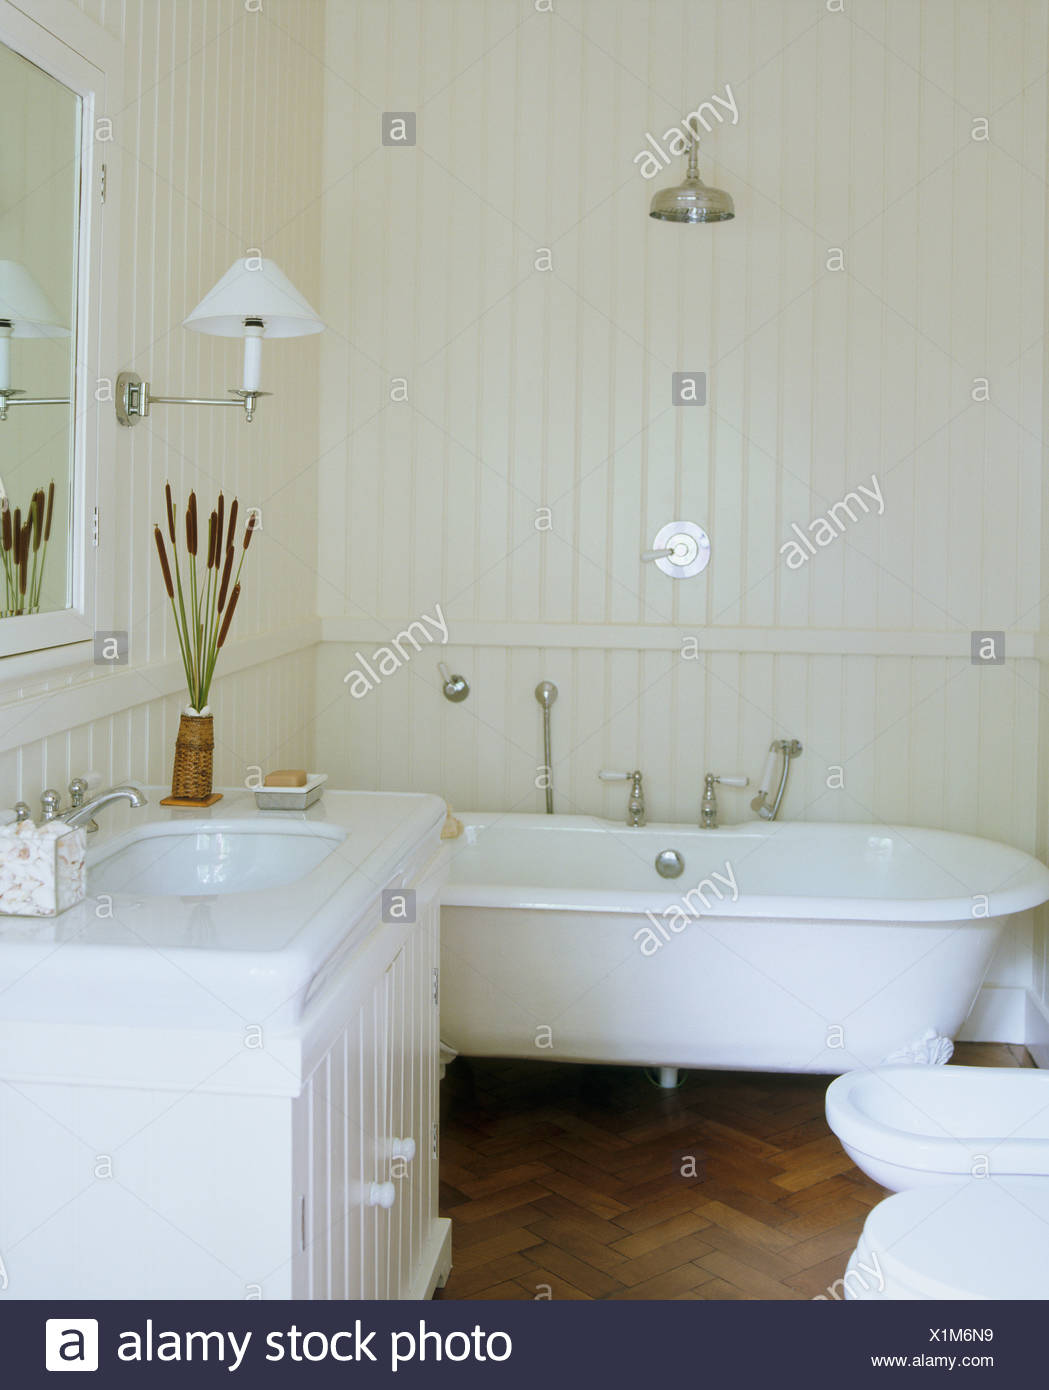 Chrome Shower Above Roll Top Bath In White Bathroom With ...